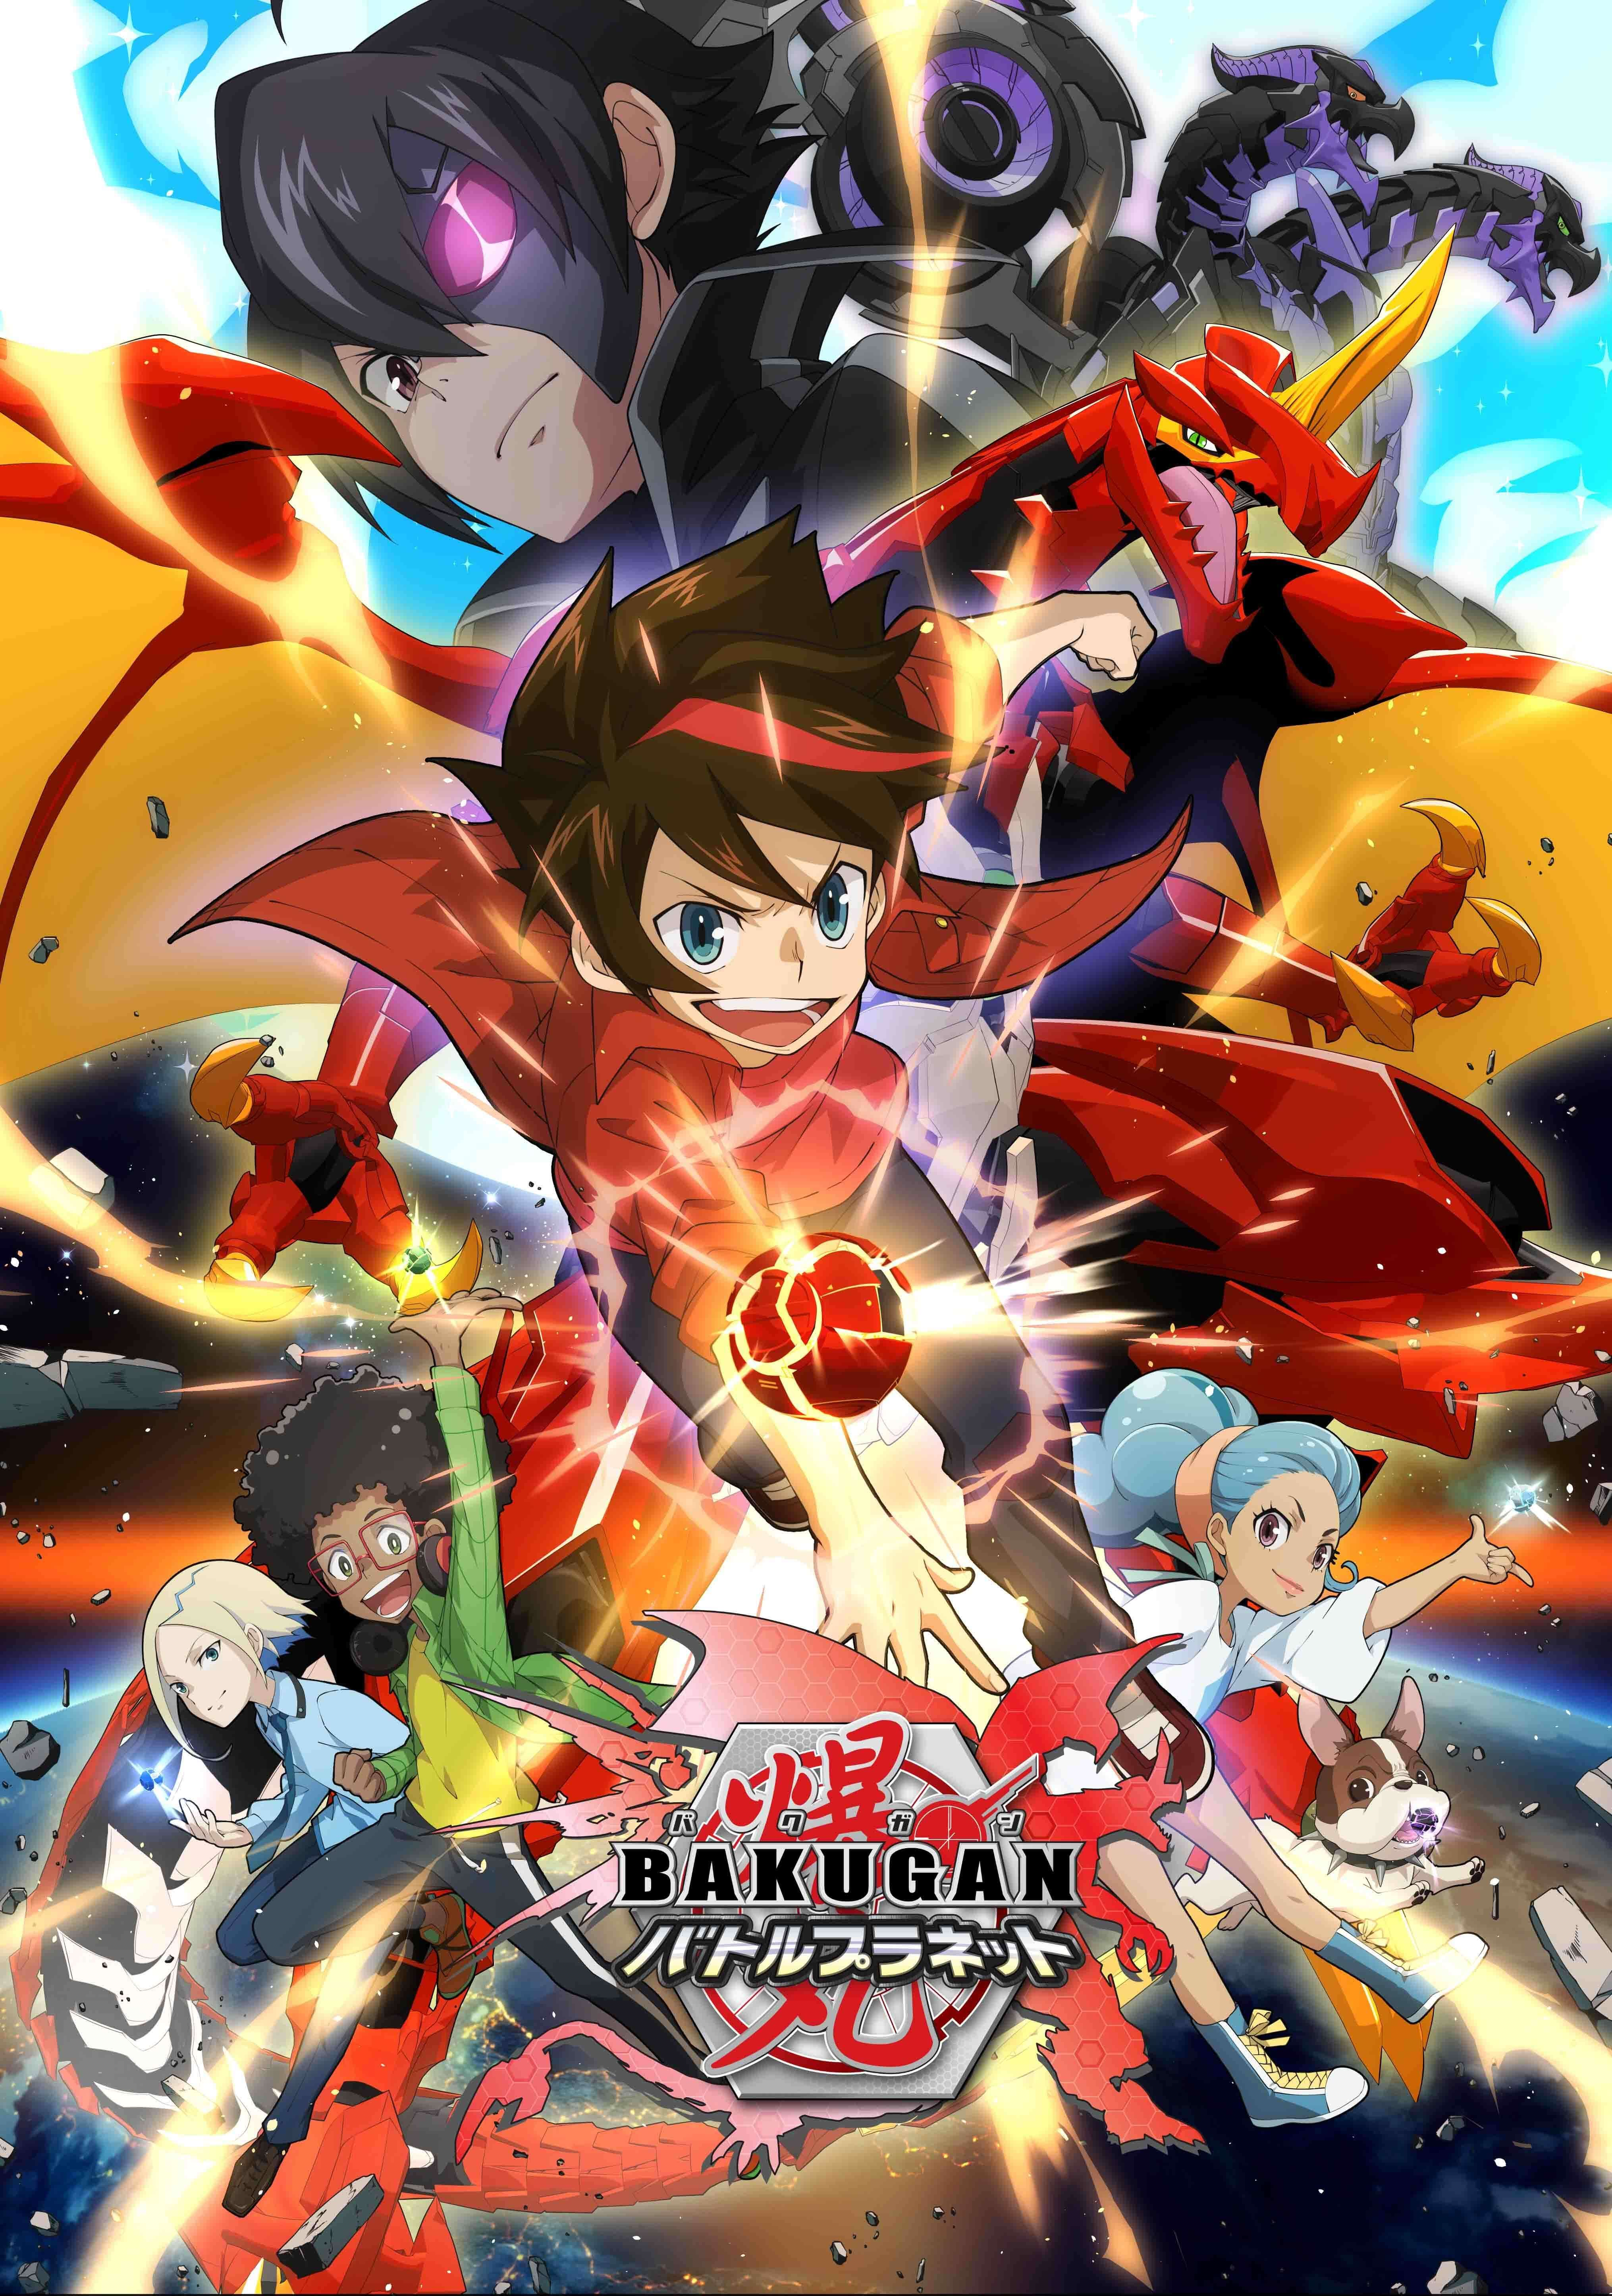 Bakugan battle planet is an ongoing canadian japanese american animated series that serves as a reboot to the original 2007 2012 anime series bakugan